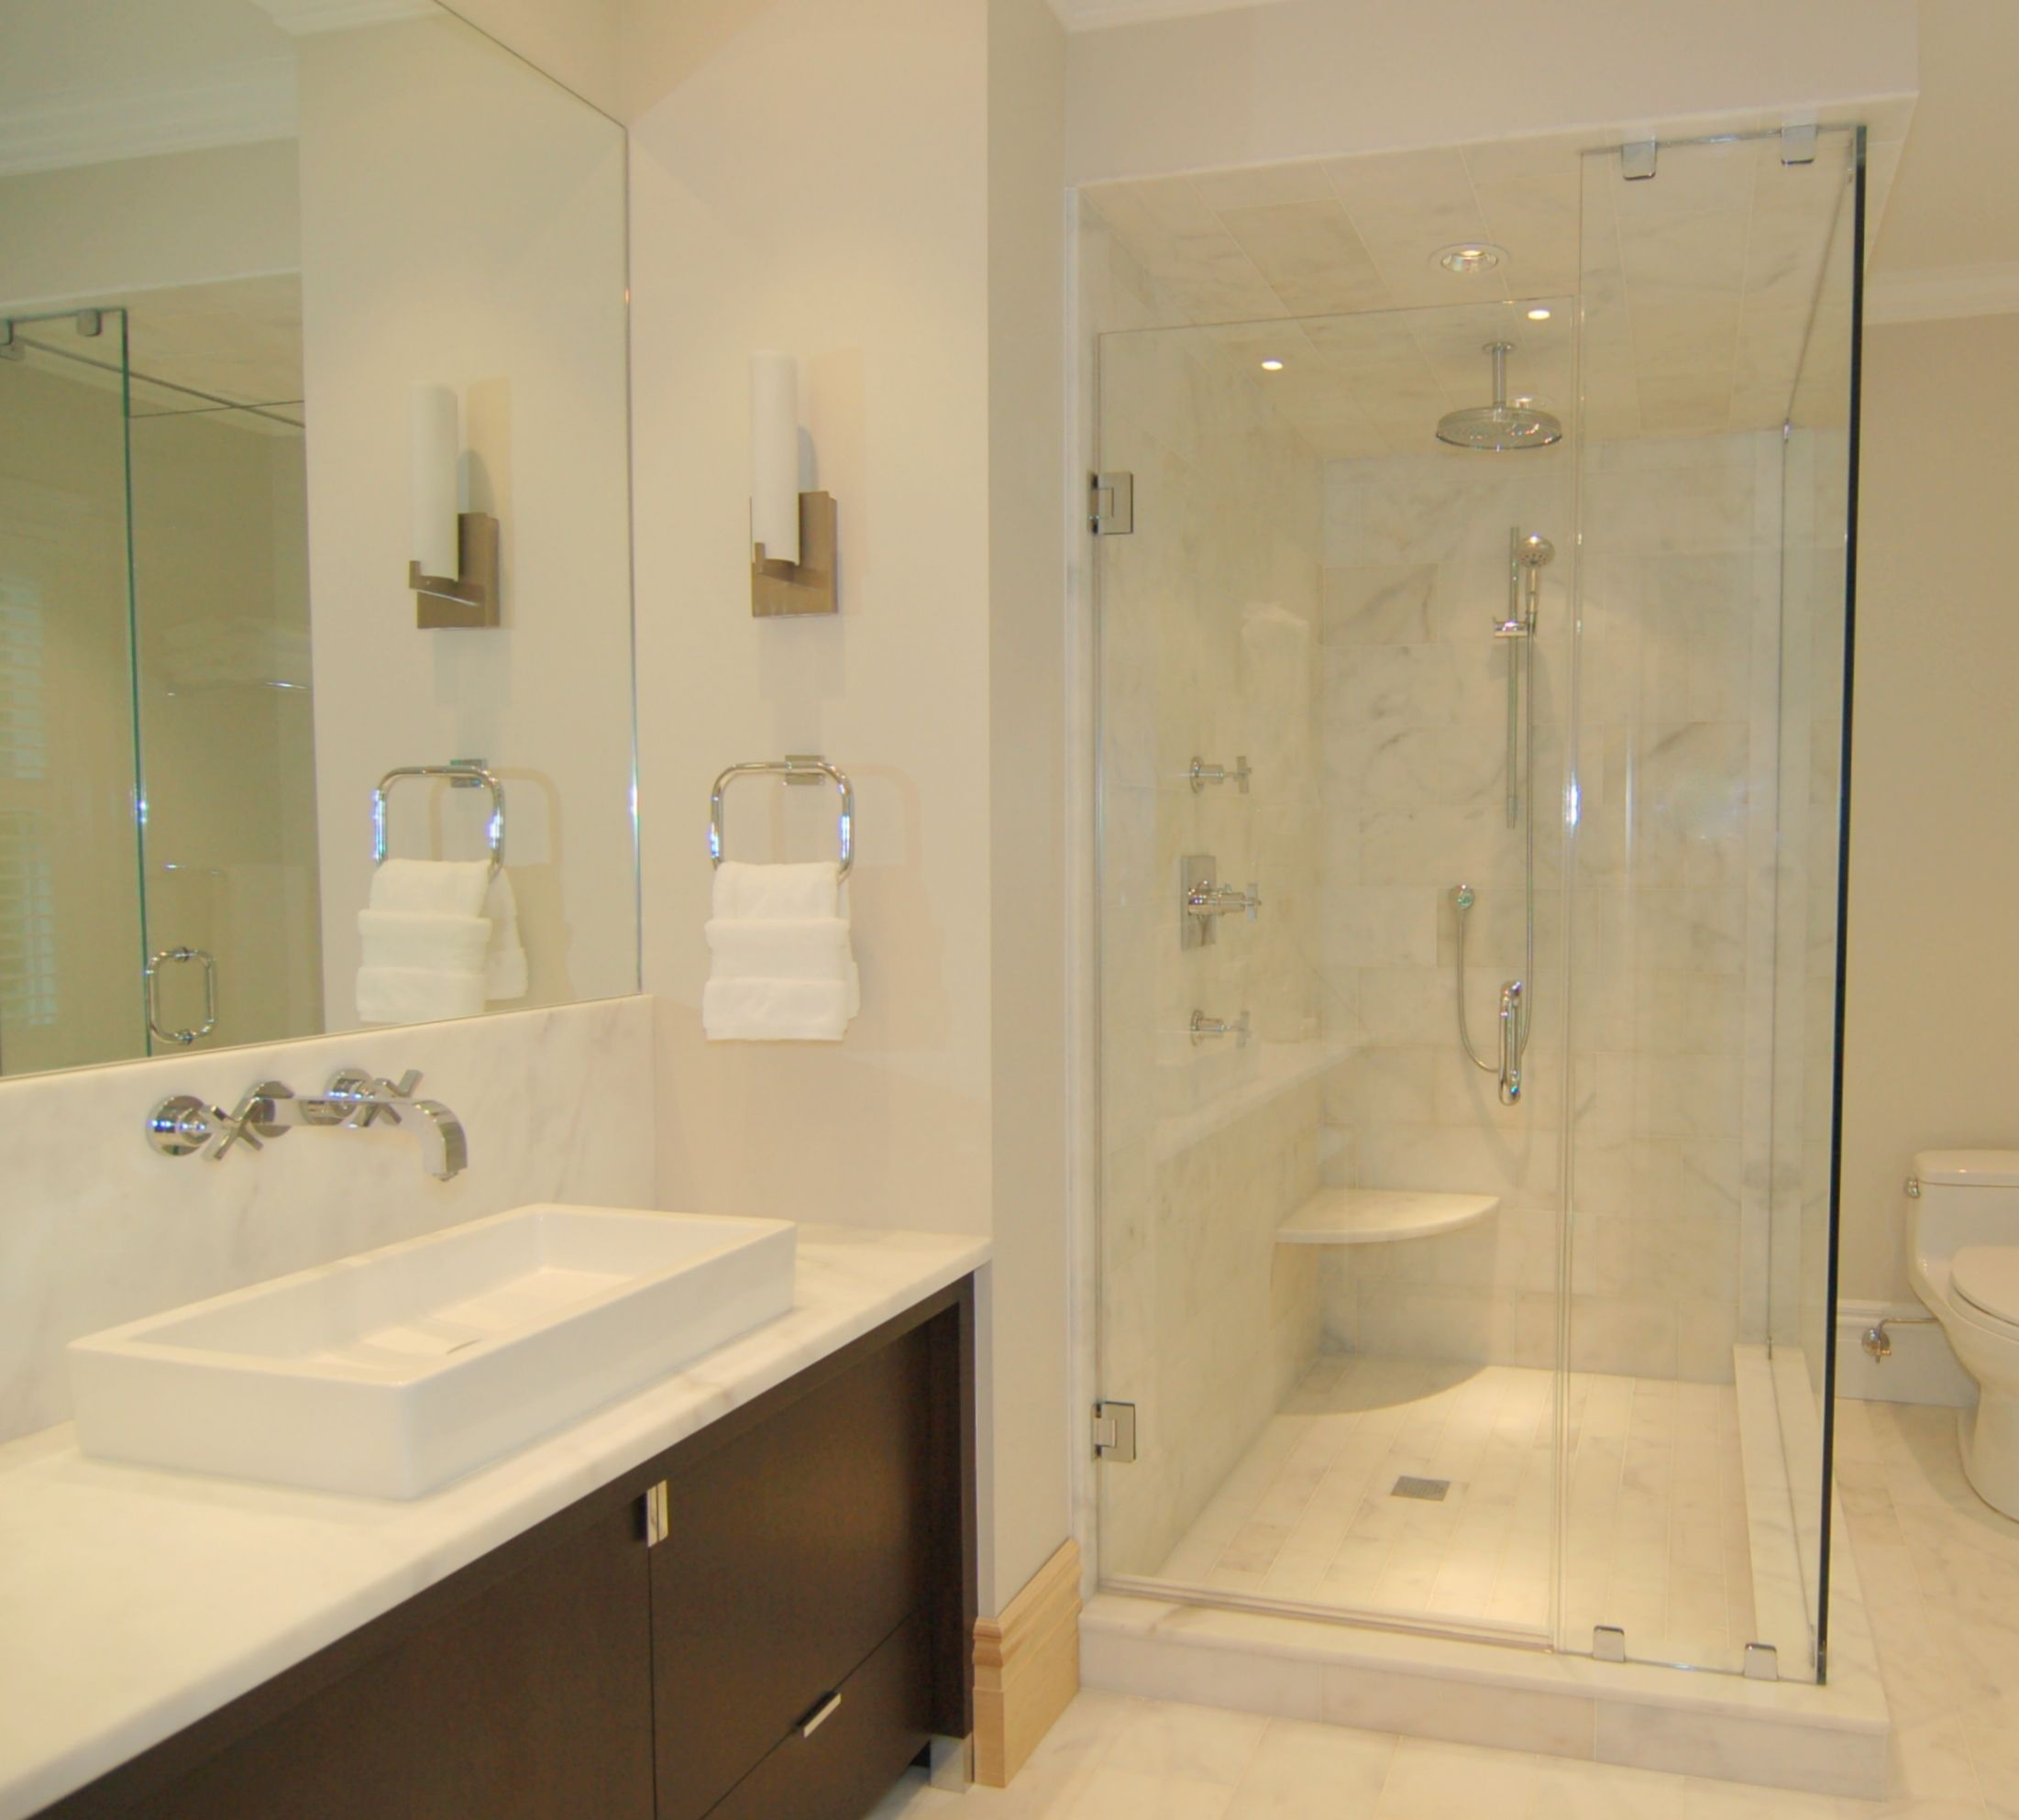 Captivating Cost For Frameless Glass Shower Doors For Contemporary Small Bathroom  Design With Large Mirror Design